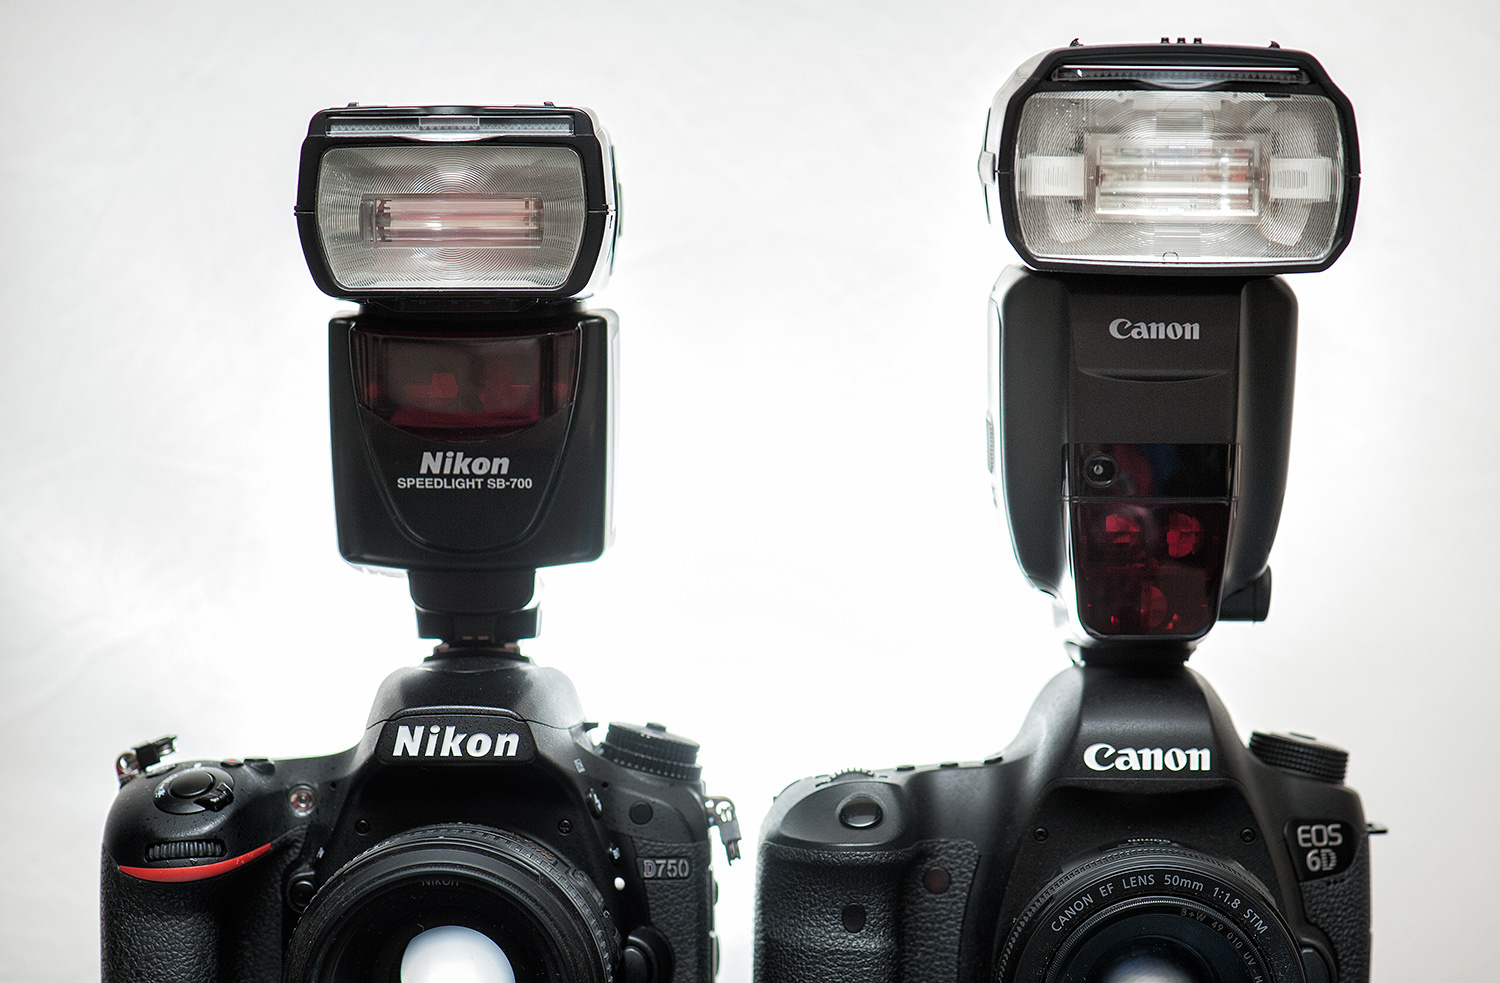 A size comparison between a Nikon SB-700 and the Canon 600EX-RT. The Canon 430EX III-RT is smaller still.